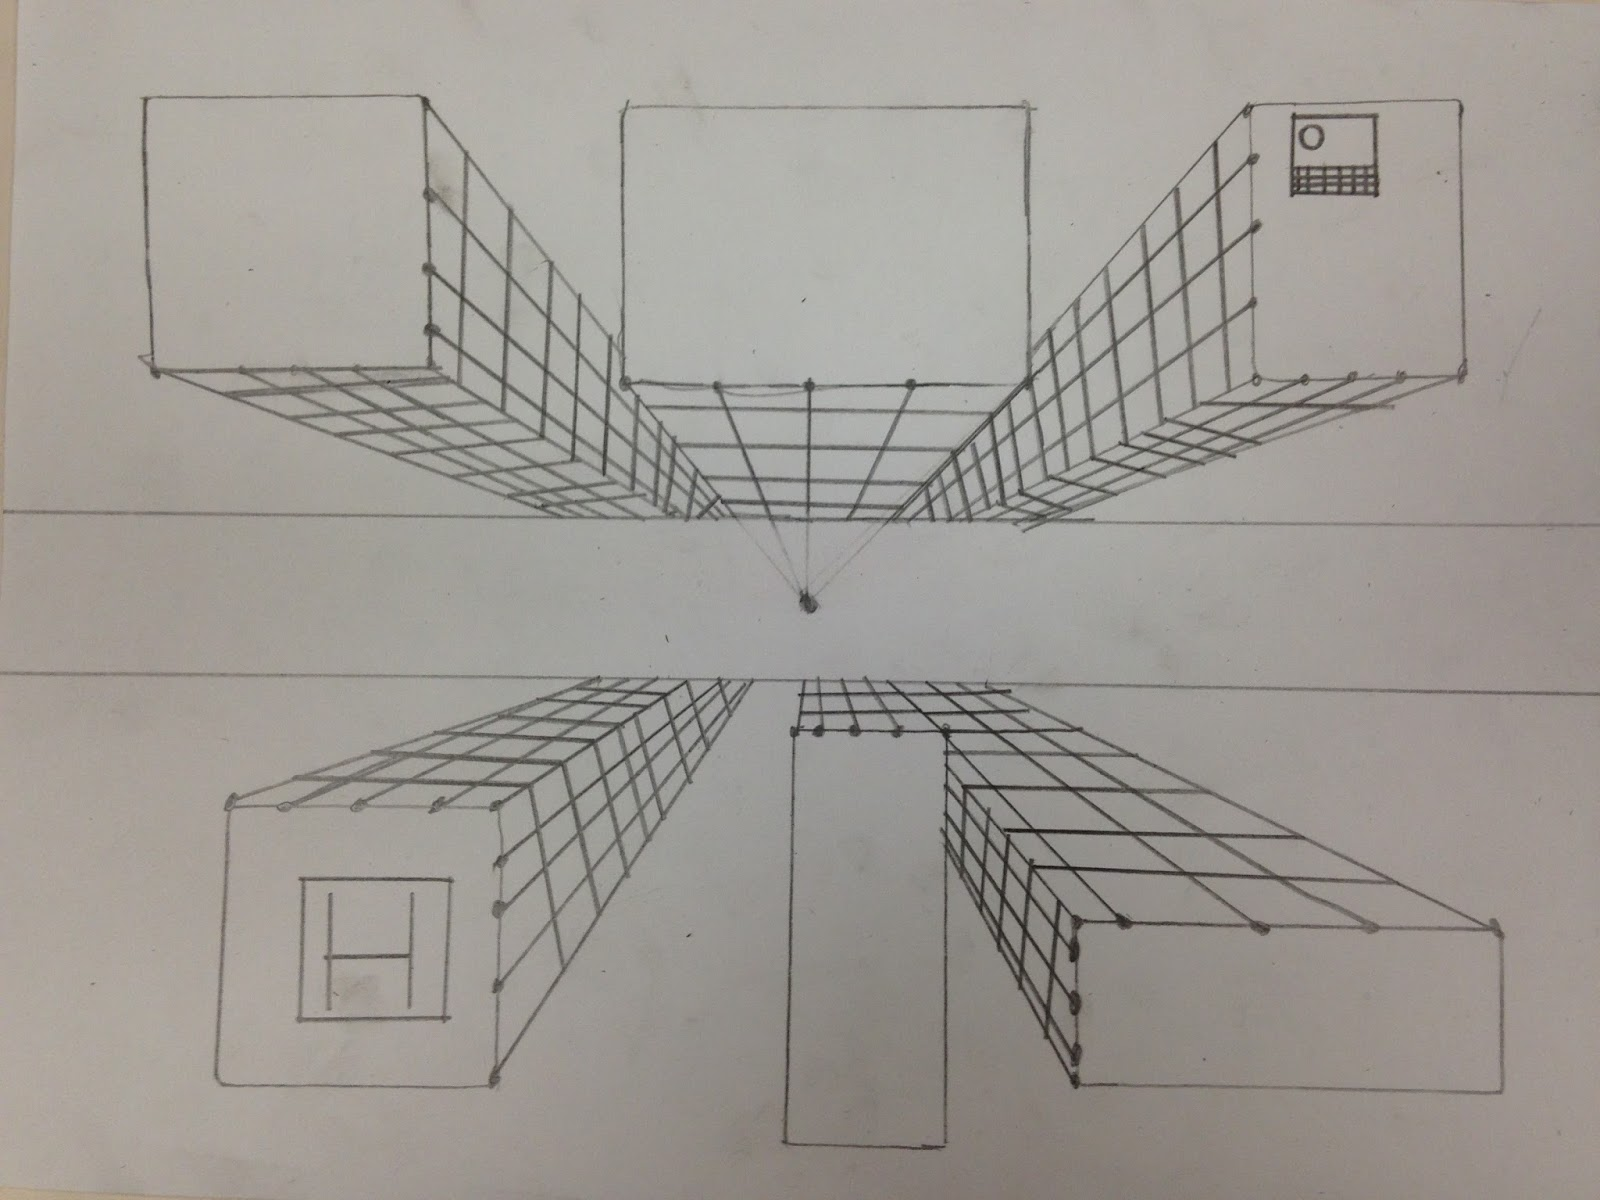 Drawing Straight Lines With A Ruler Worksheets : Balance point on a stick or ruler ingridscience